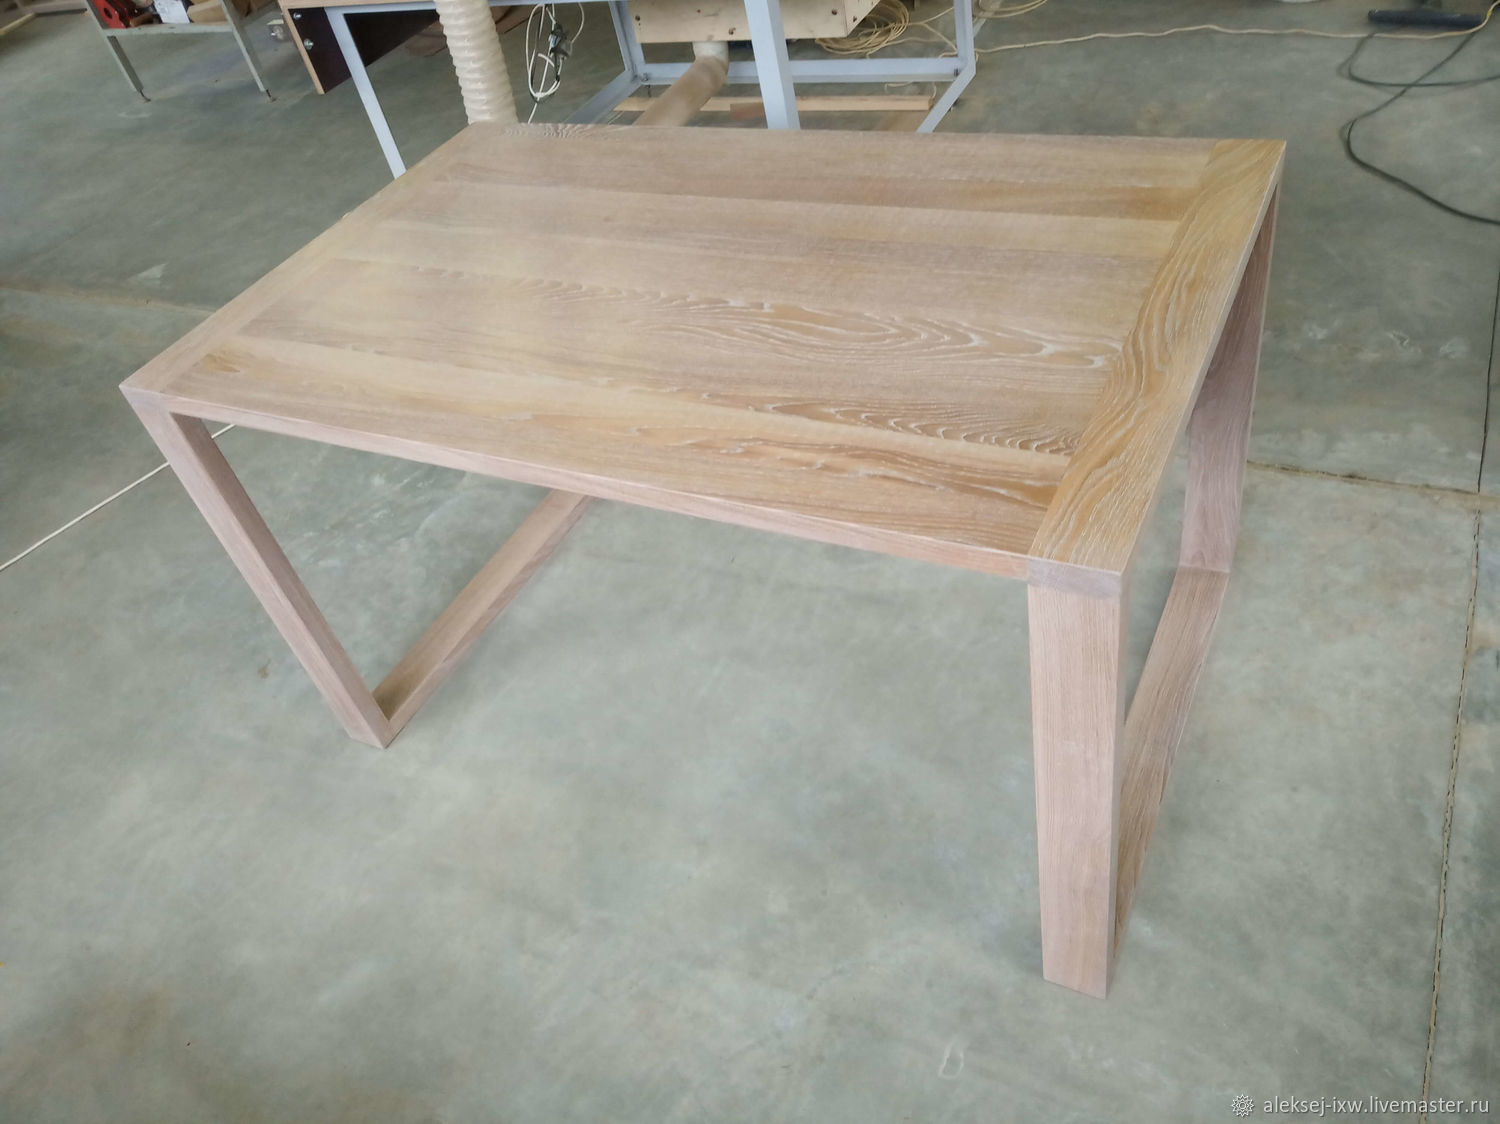 Table made of oak 800 h1300 mm, Tables, Moscow,  Фото №1